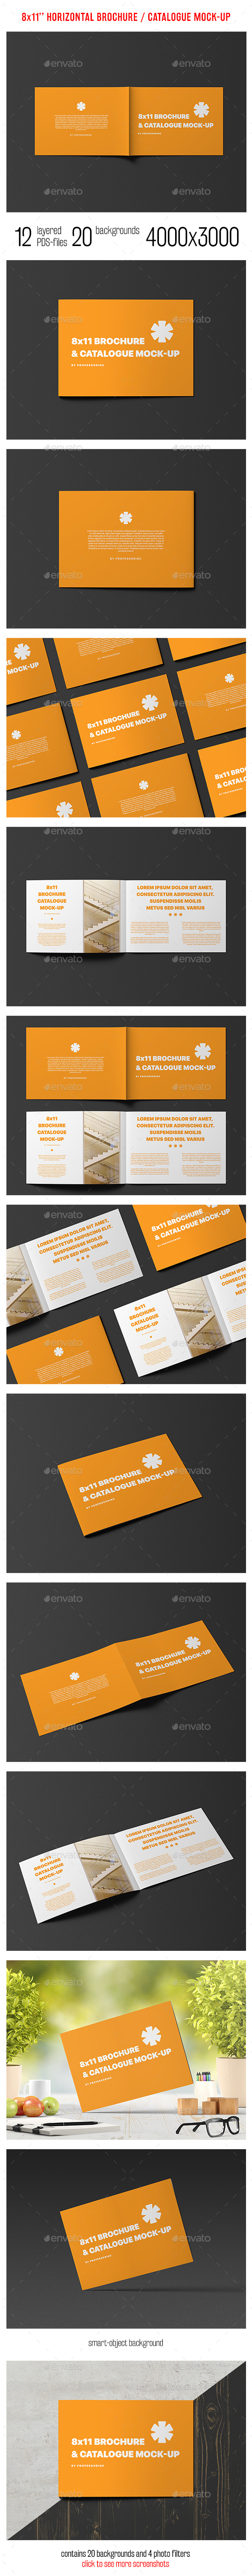 8x11 Horizontal Brochure / Catalogue Mock-Up - Brochures Print